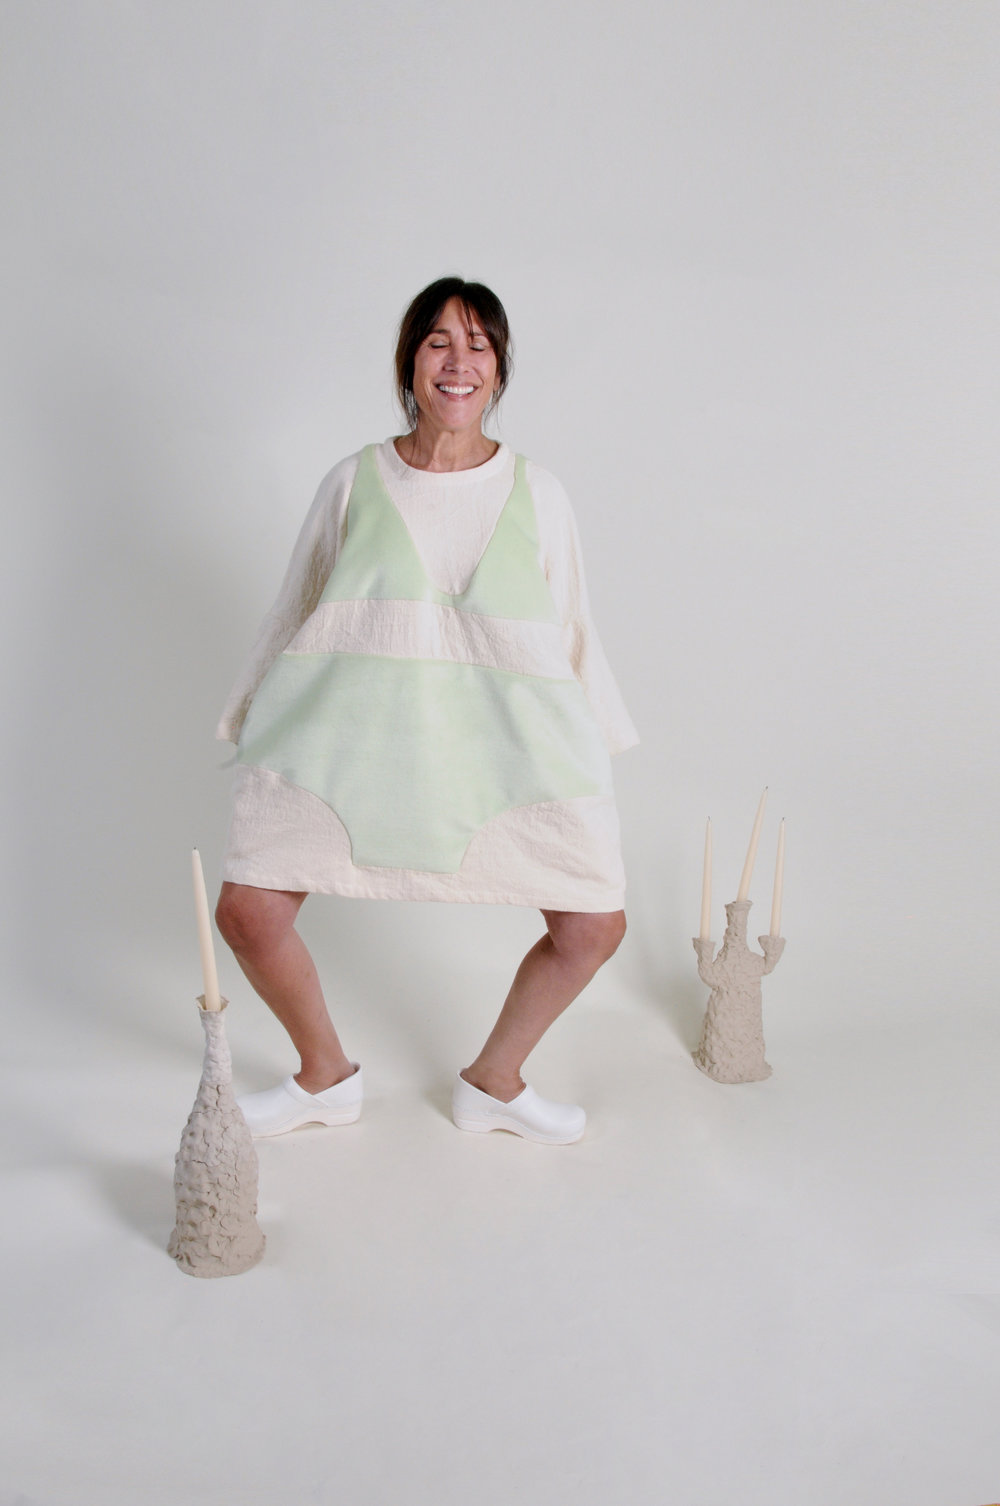 UNDERWEAR DRESS: AVOCADO AND gf TOAST - 0215COLOR : CREAM AND SOFT GREENFABRIC : TEXTURED COTTON BASE WITH SOFT GREEN FAUX FURWHOLESALE $124 / RETAIL $248SIZES : ONE SIZE / FITS XS - XL